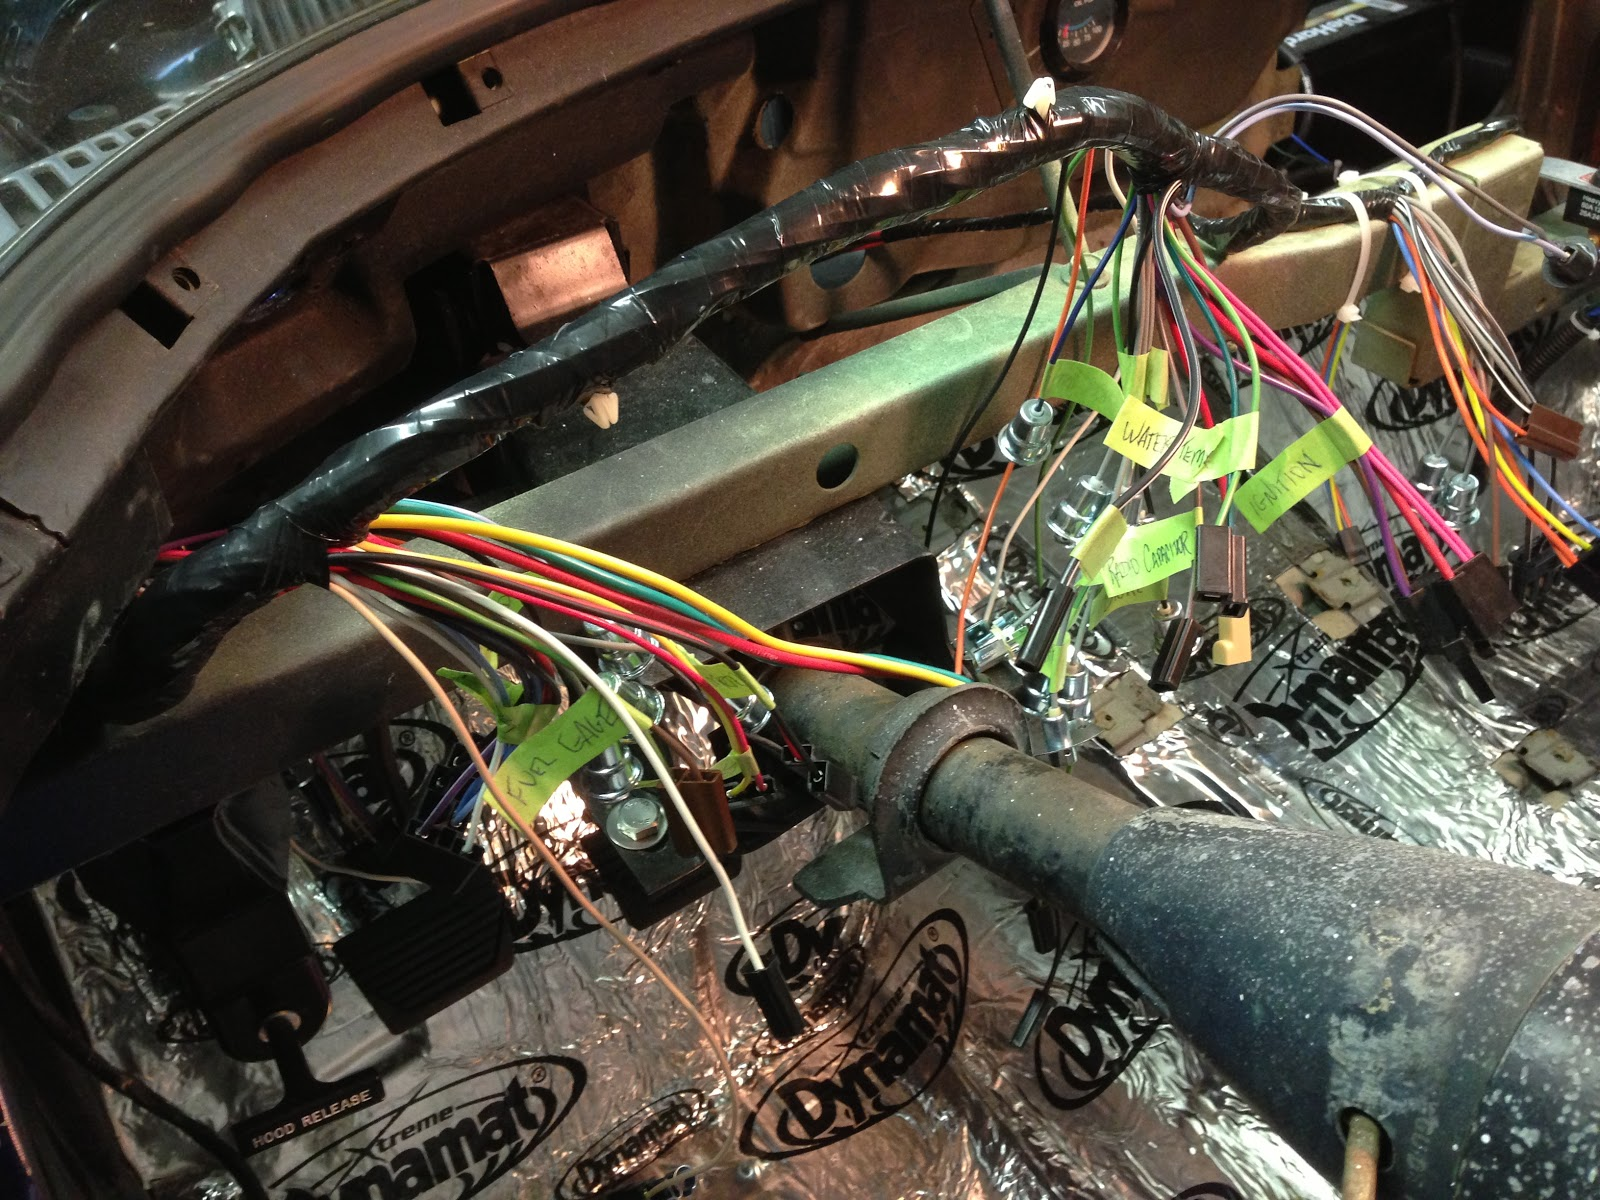 hight resolution of the dash wiring harness includes the fuse box which is authentic right down to the glass fuses